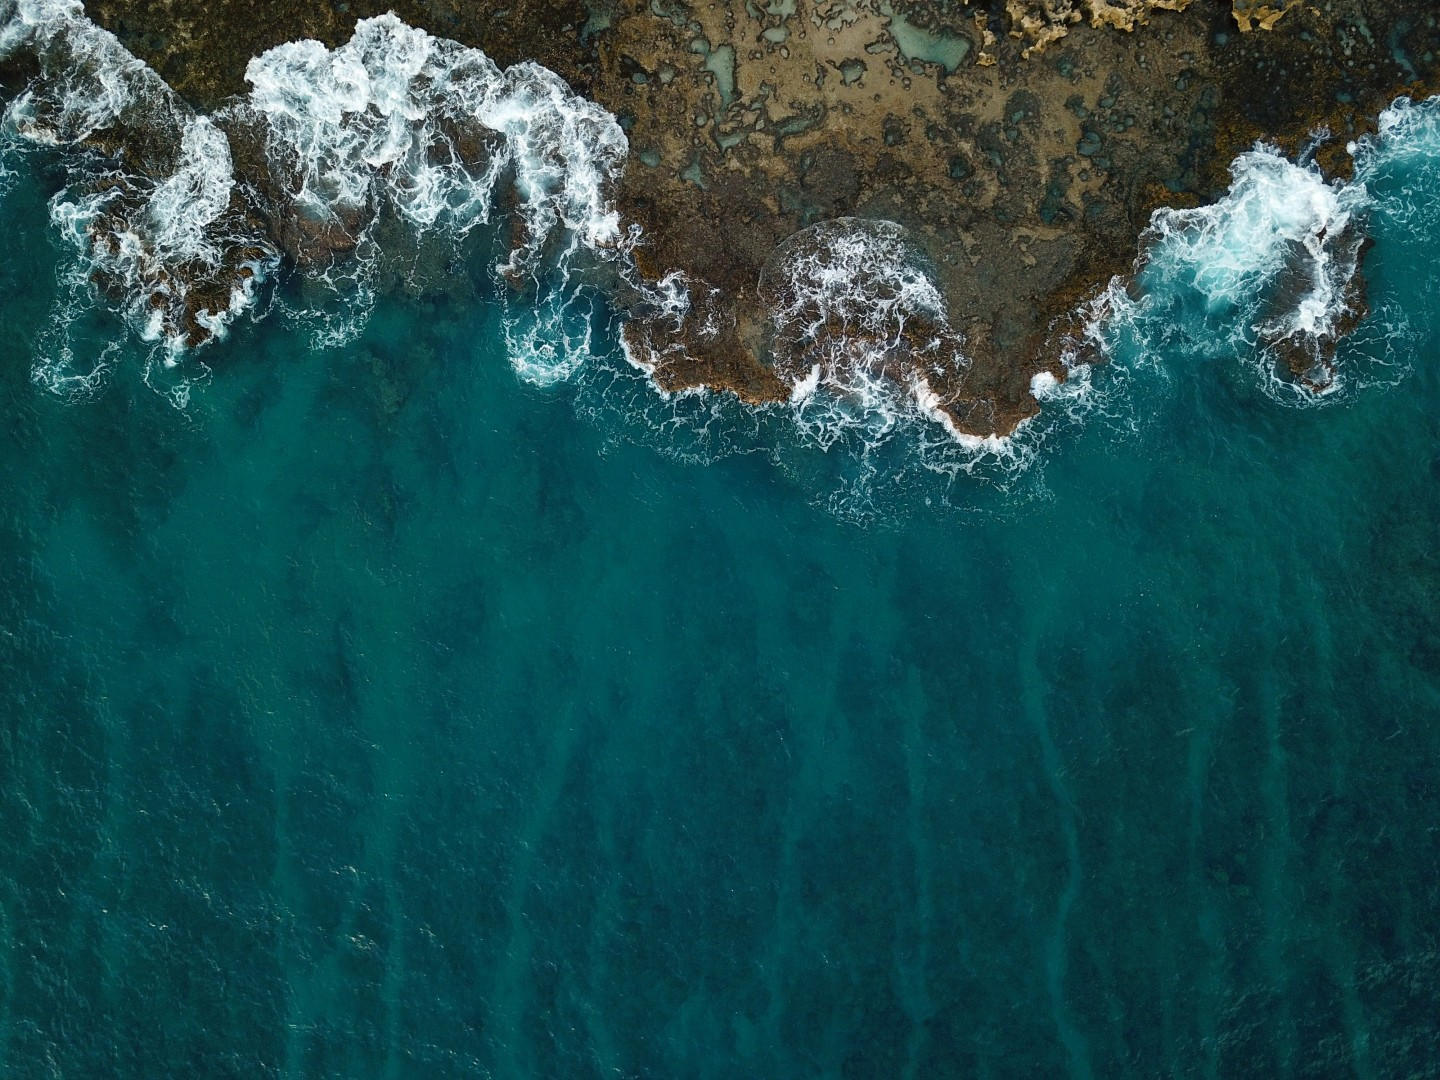 ocean and beach from above